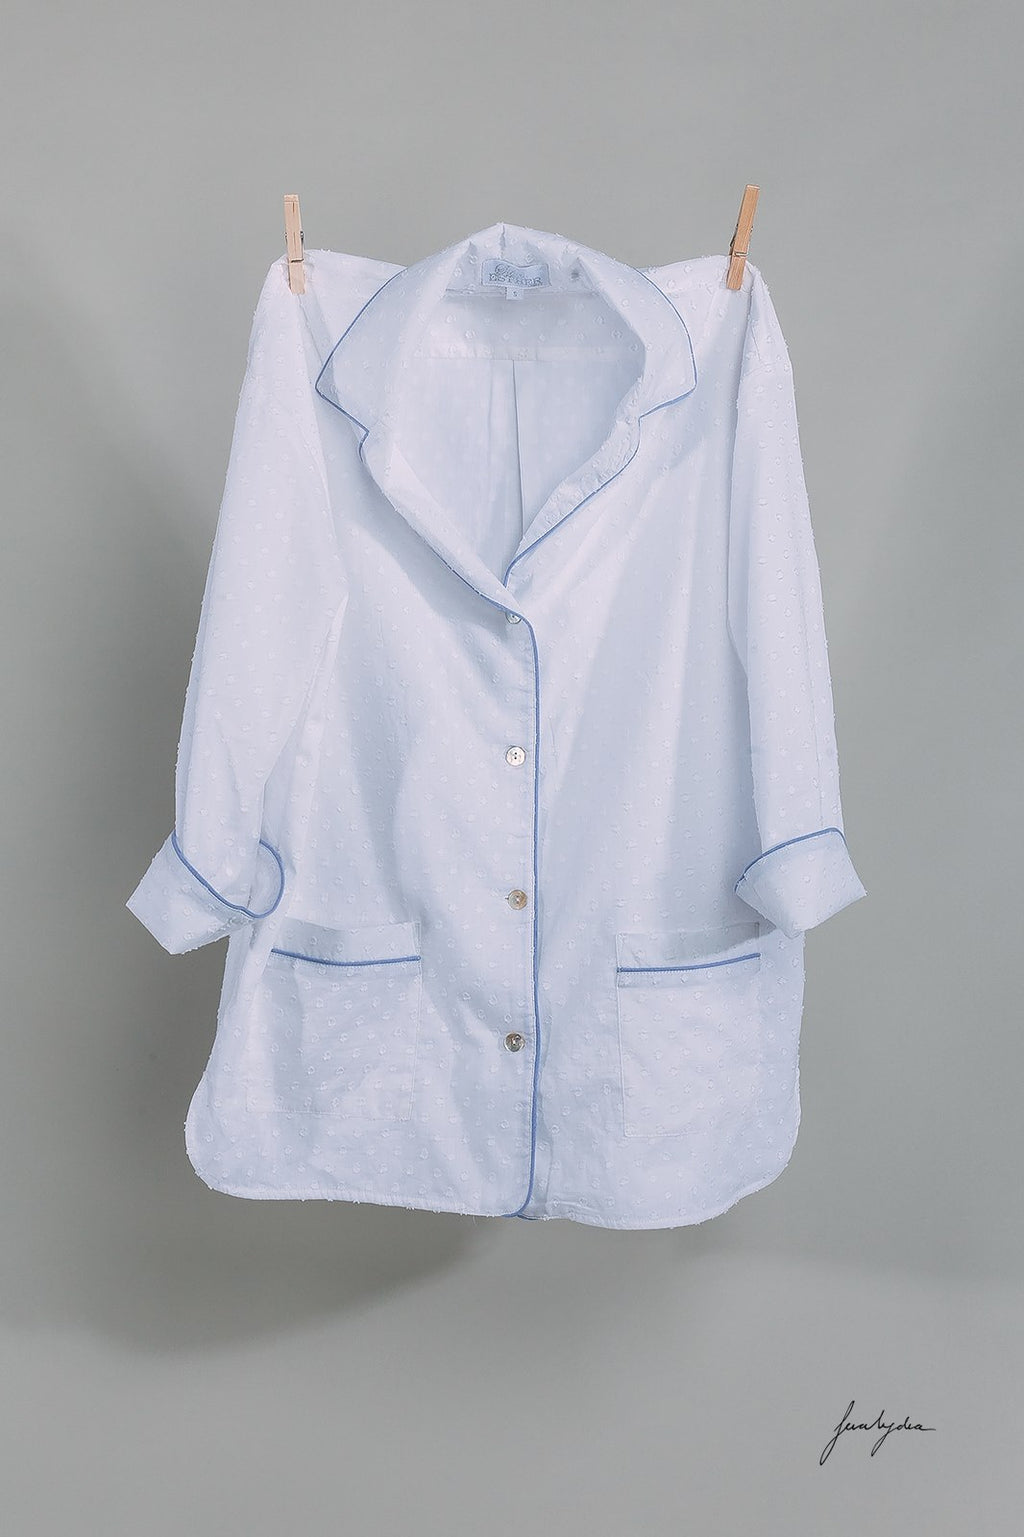 Luxury white cotton dobby long pyjamas with blue chambray piping. The pj set features Mother of Pearl buttons and pockets on the jacket. Ultimate luxury loungewear!